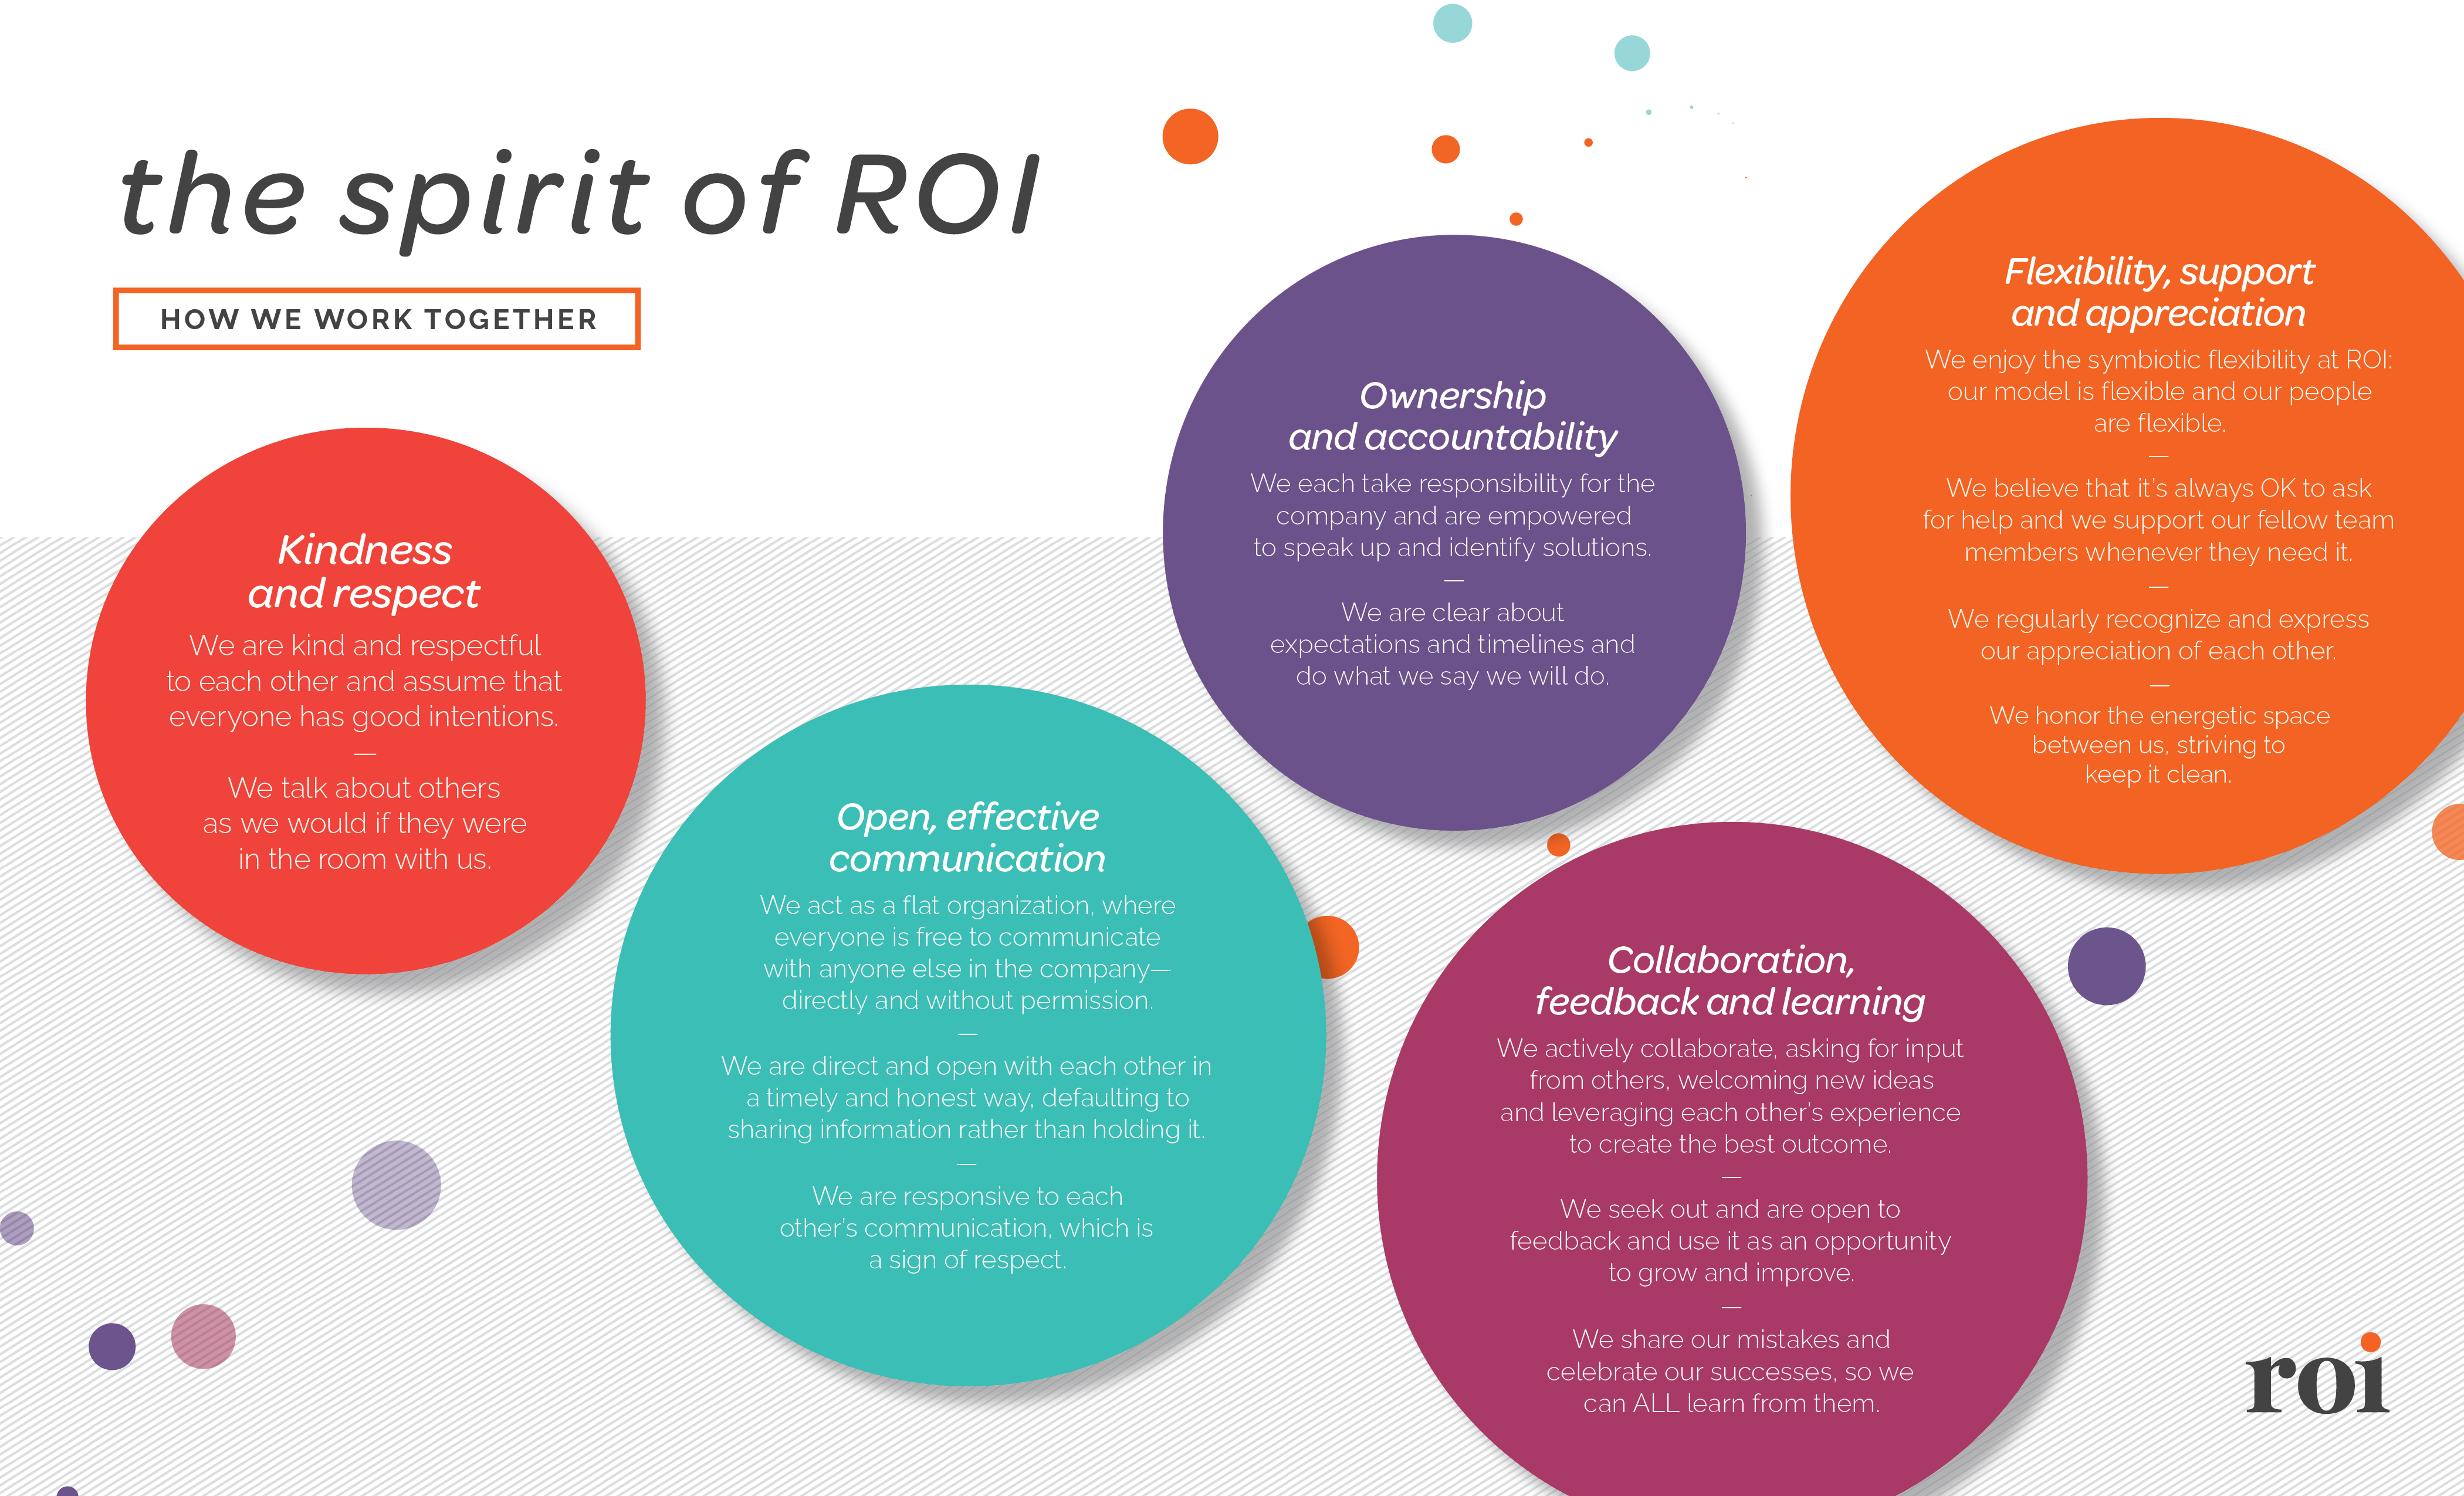 The Spirit of ROI is a framework that allows us to align on our values.